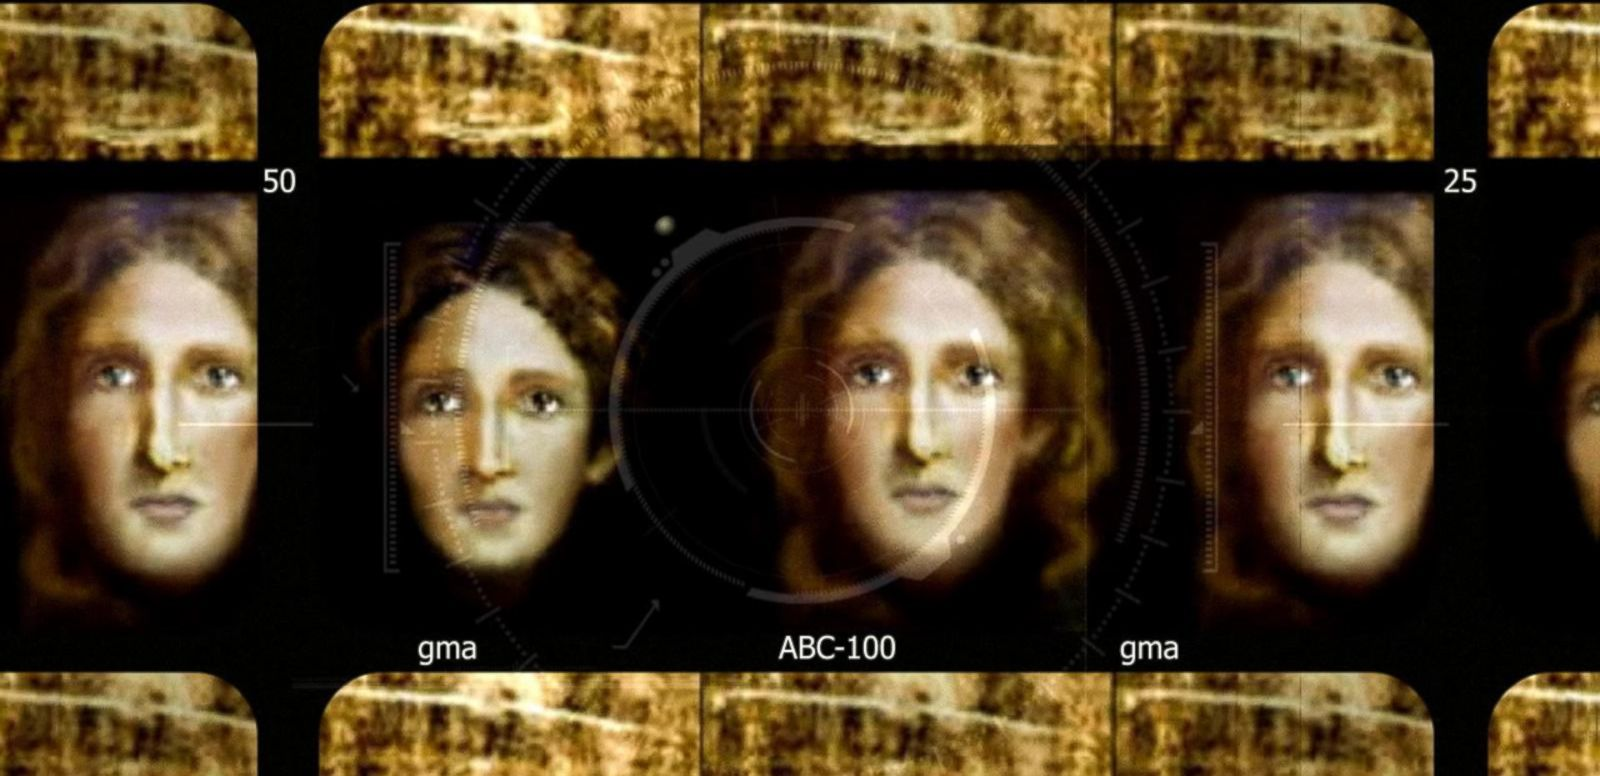 VIDEO: Technology Recreates What Jesus May Have Looked Like at Age 12